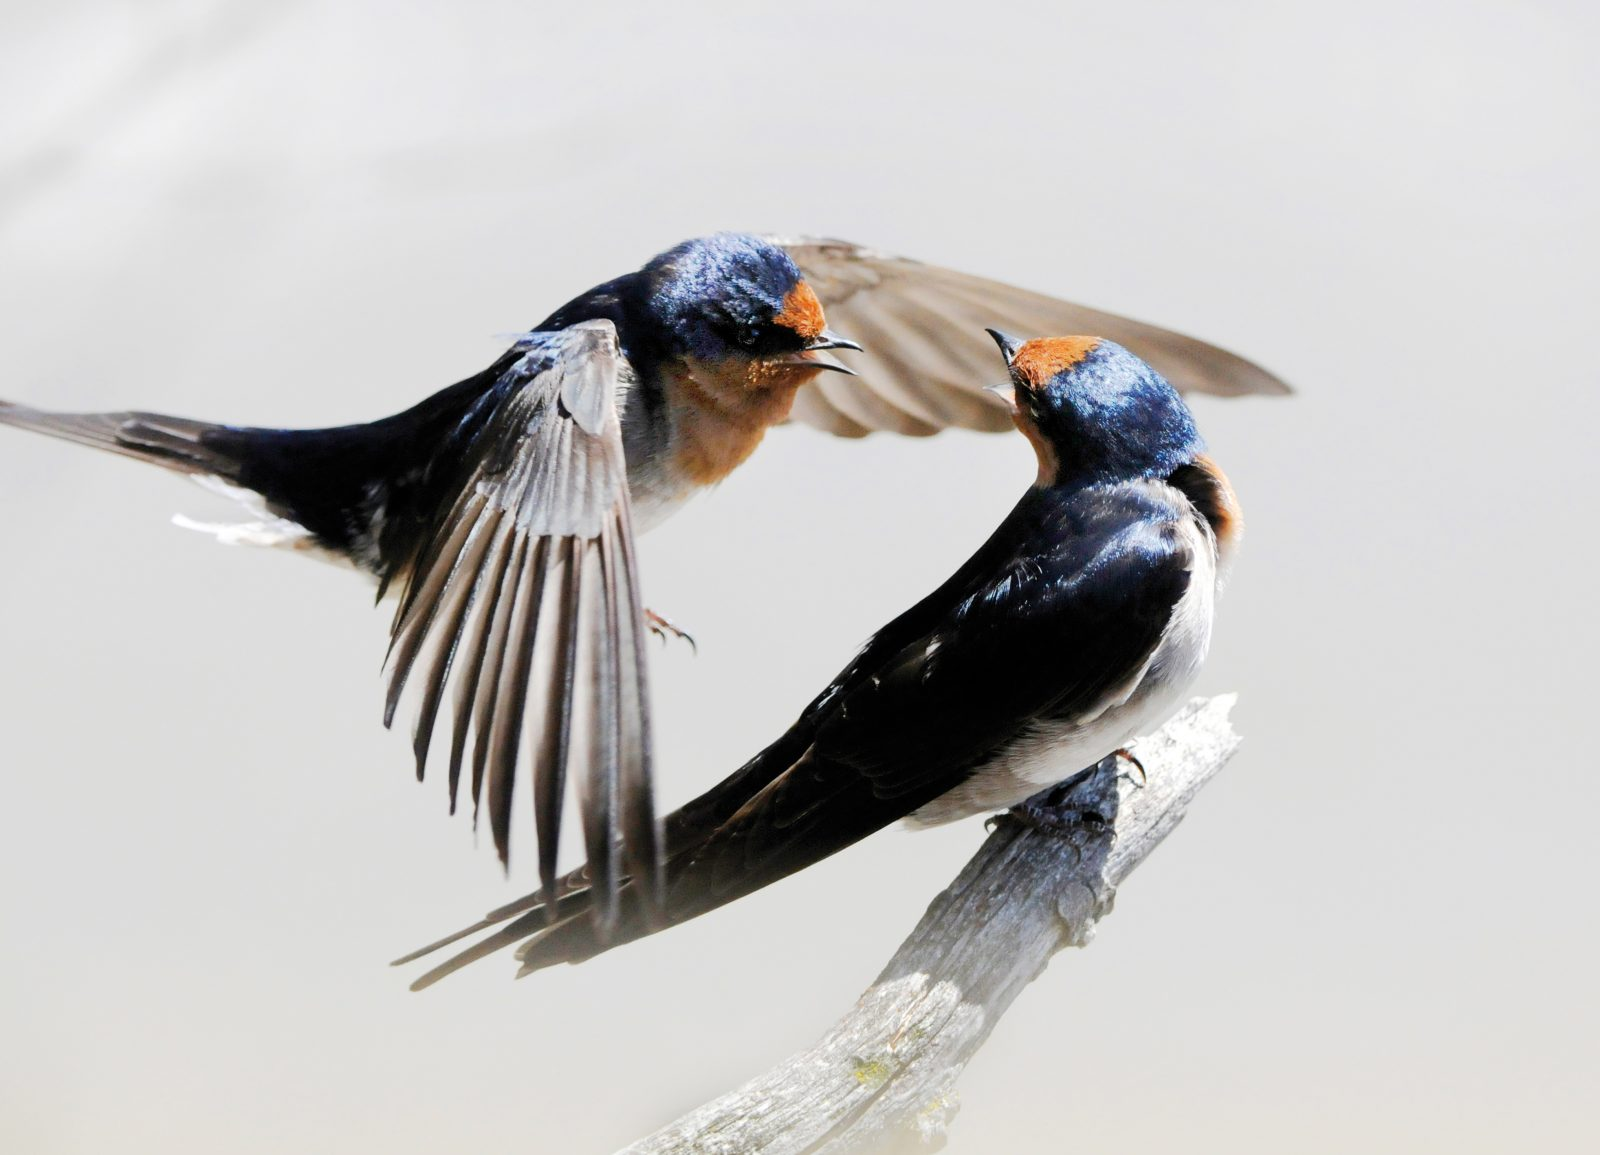 Welcome swallows move so quickly when they are courting that only a photograph can truly capture the experience, says David Hallett. He saw this pair near a nesting site at the southern end of Lake Ellesmere, one of his favourite locations. The whole episode was over in three minutes. The pair flew in, interacted four times, then flew off together.